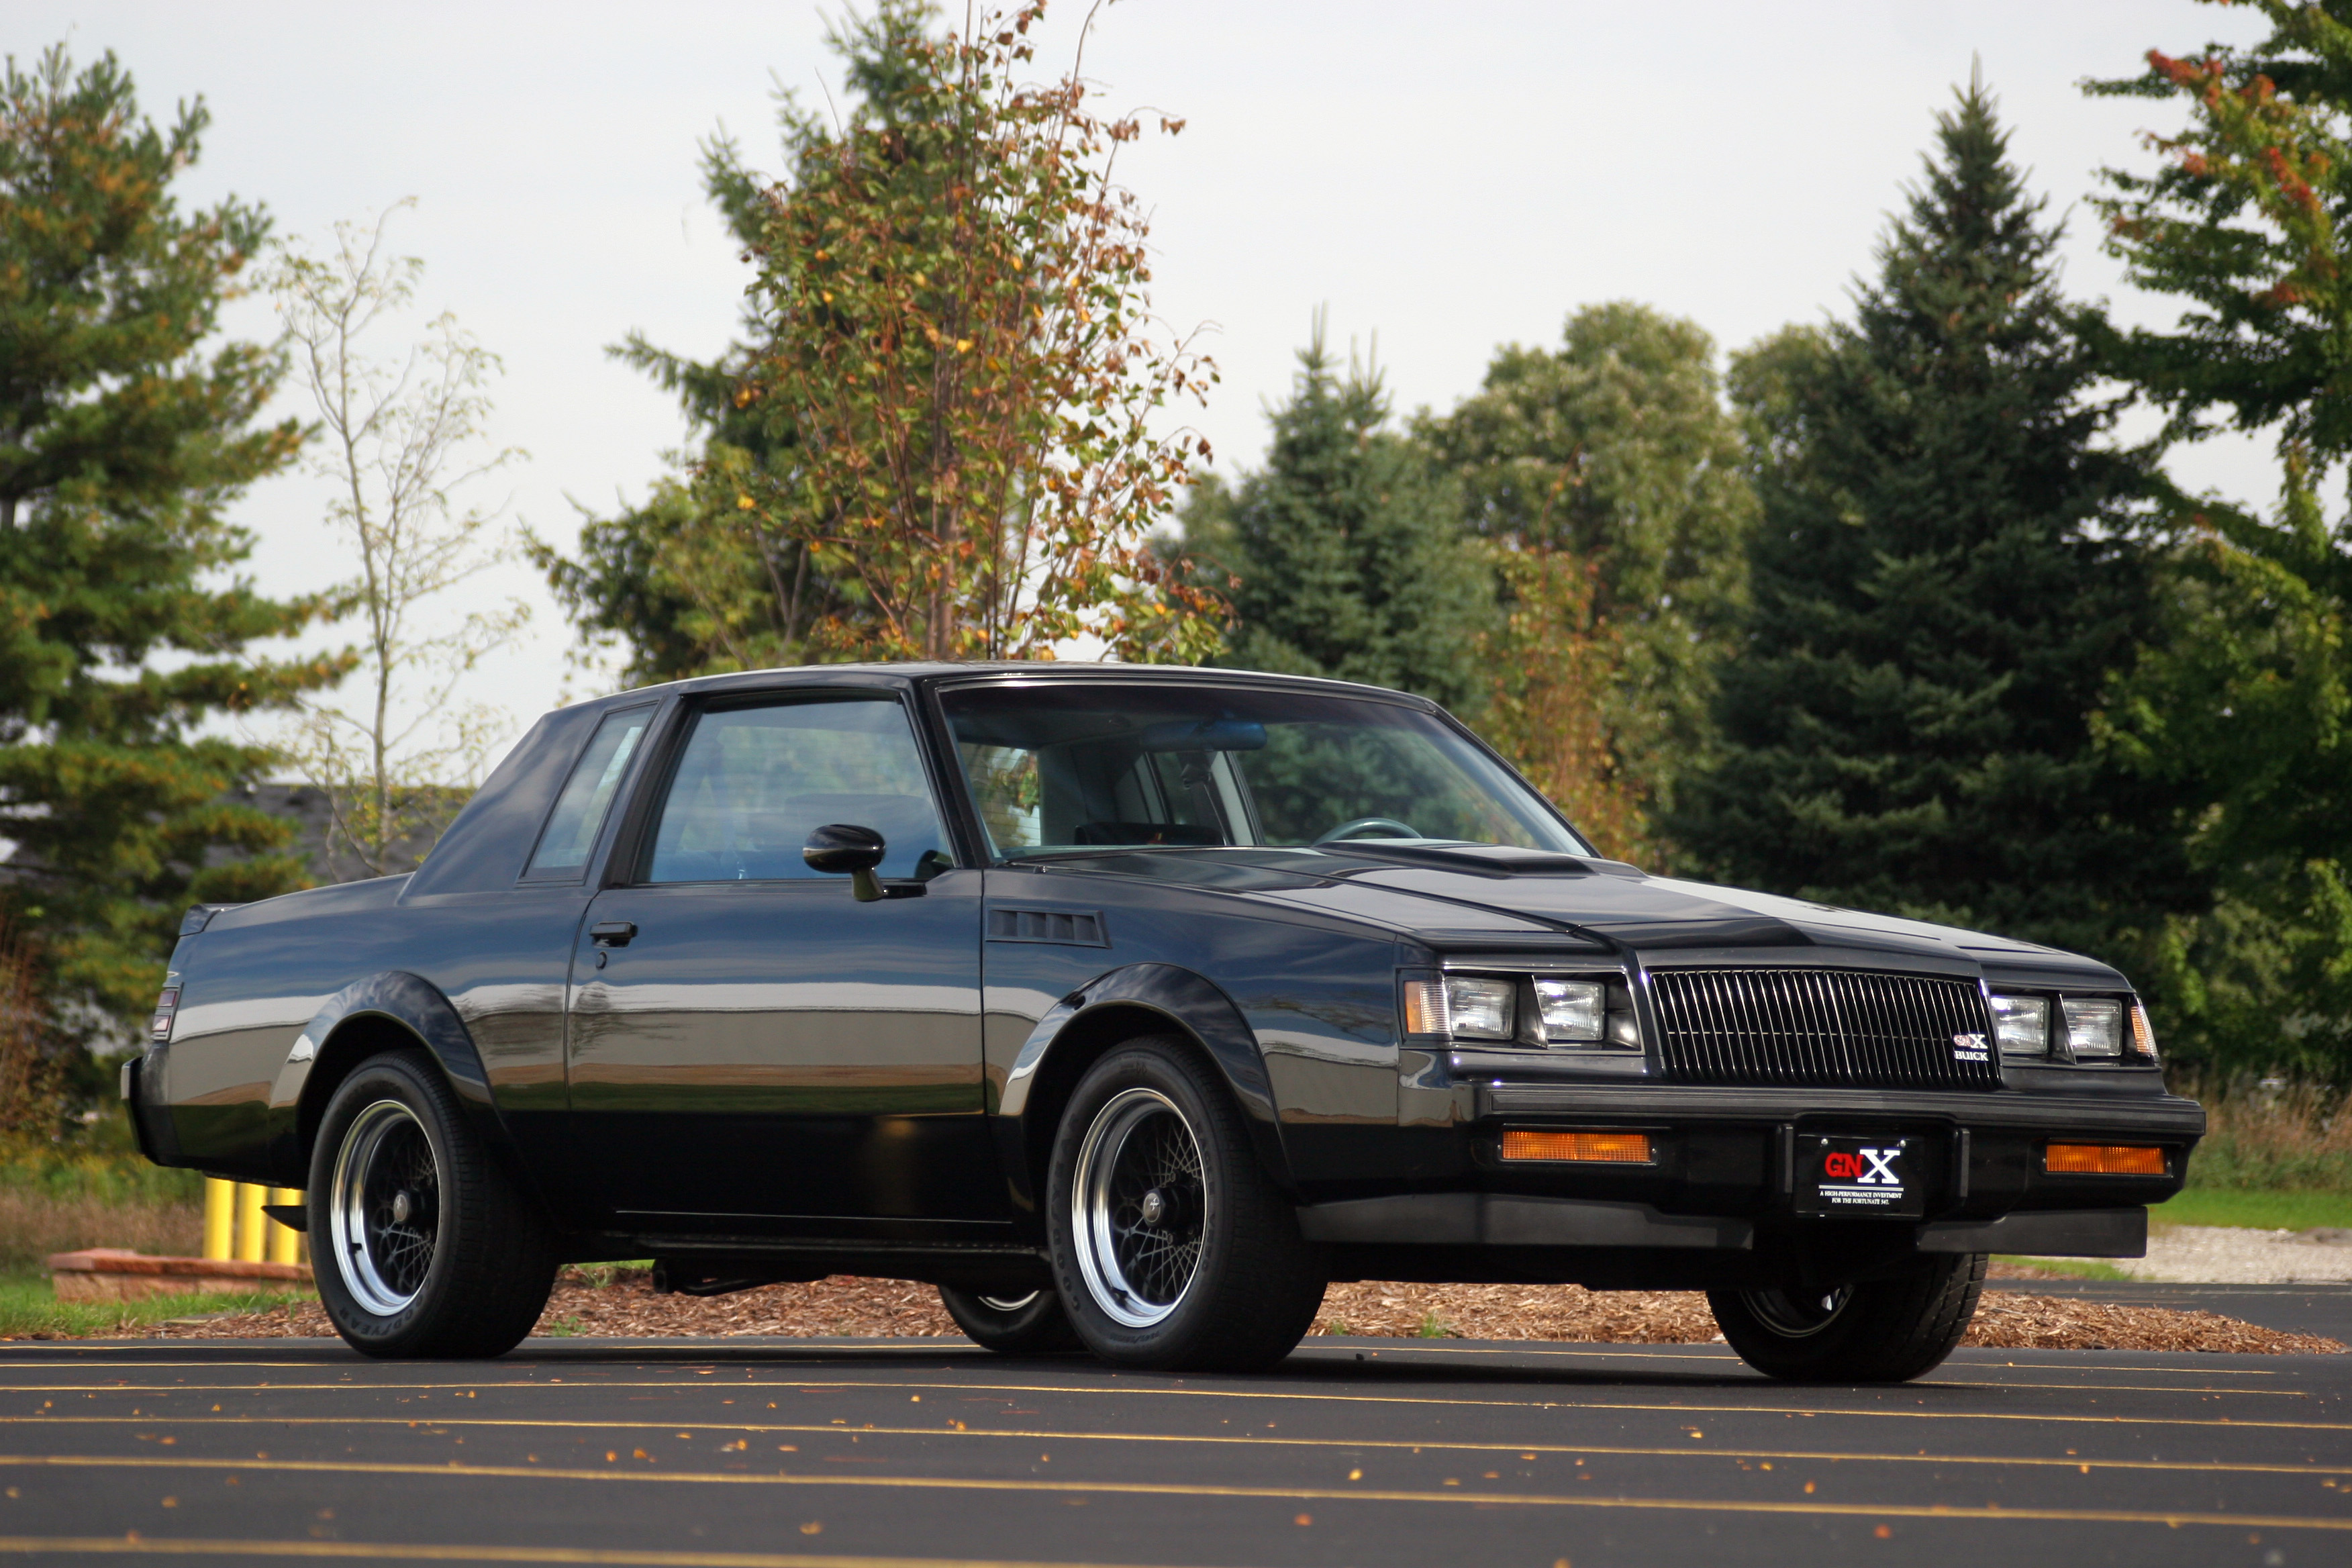 1987 Grand National Gnx >> 1987 BUICK GNX Full HD Wallpaper and Background Image | 3504x2336 | ID:288540